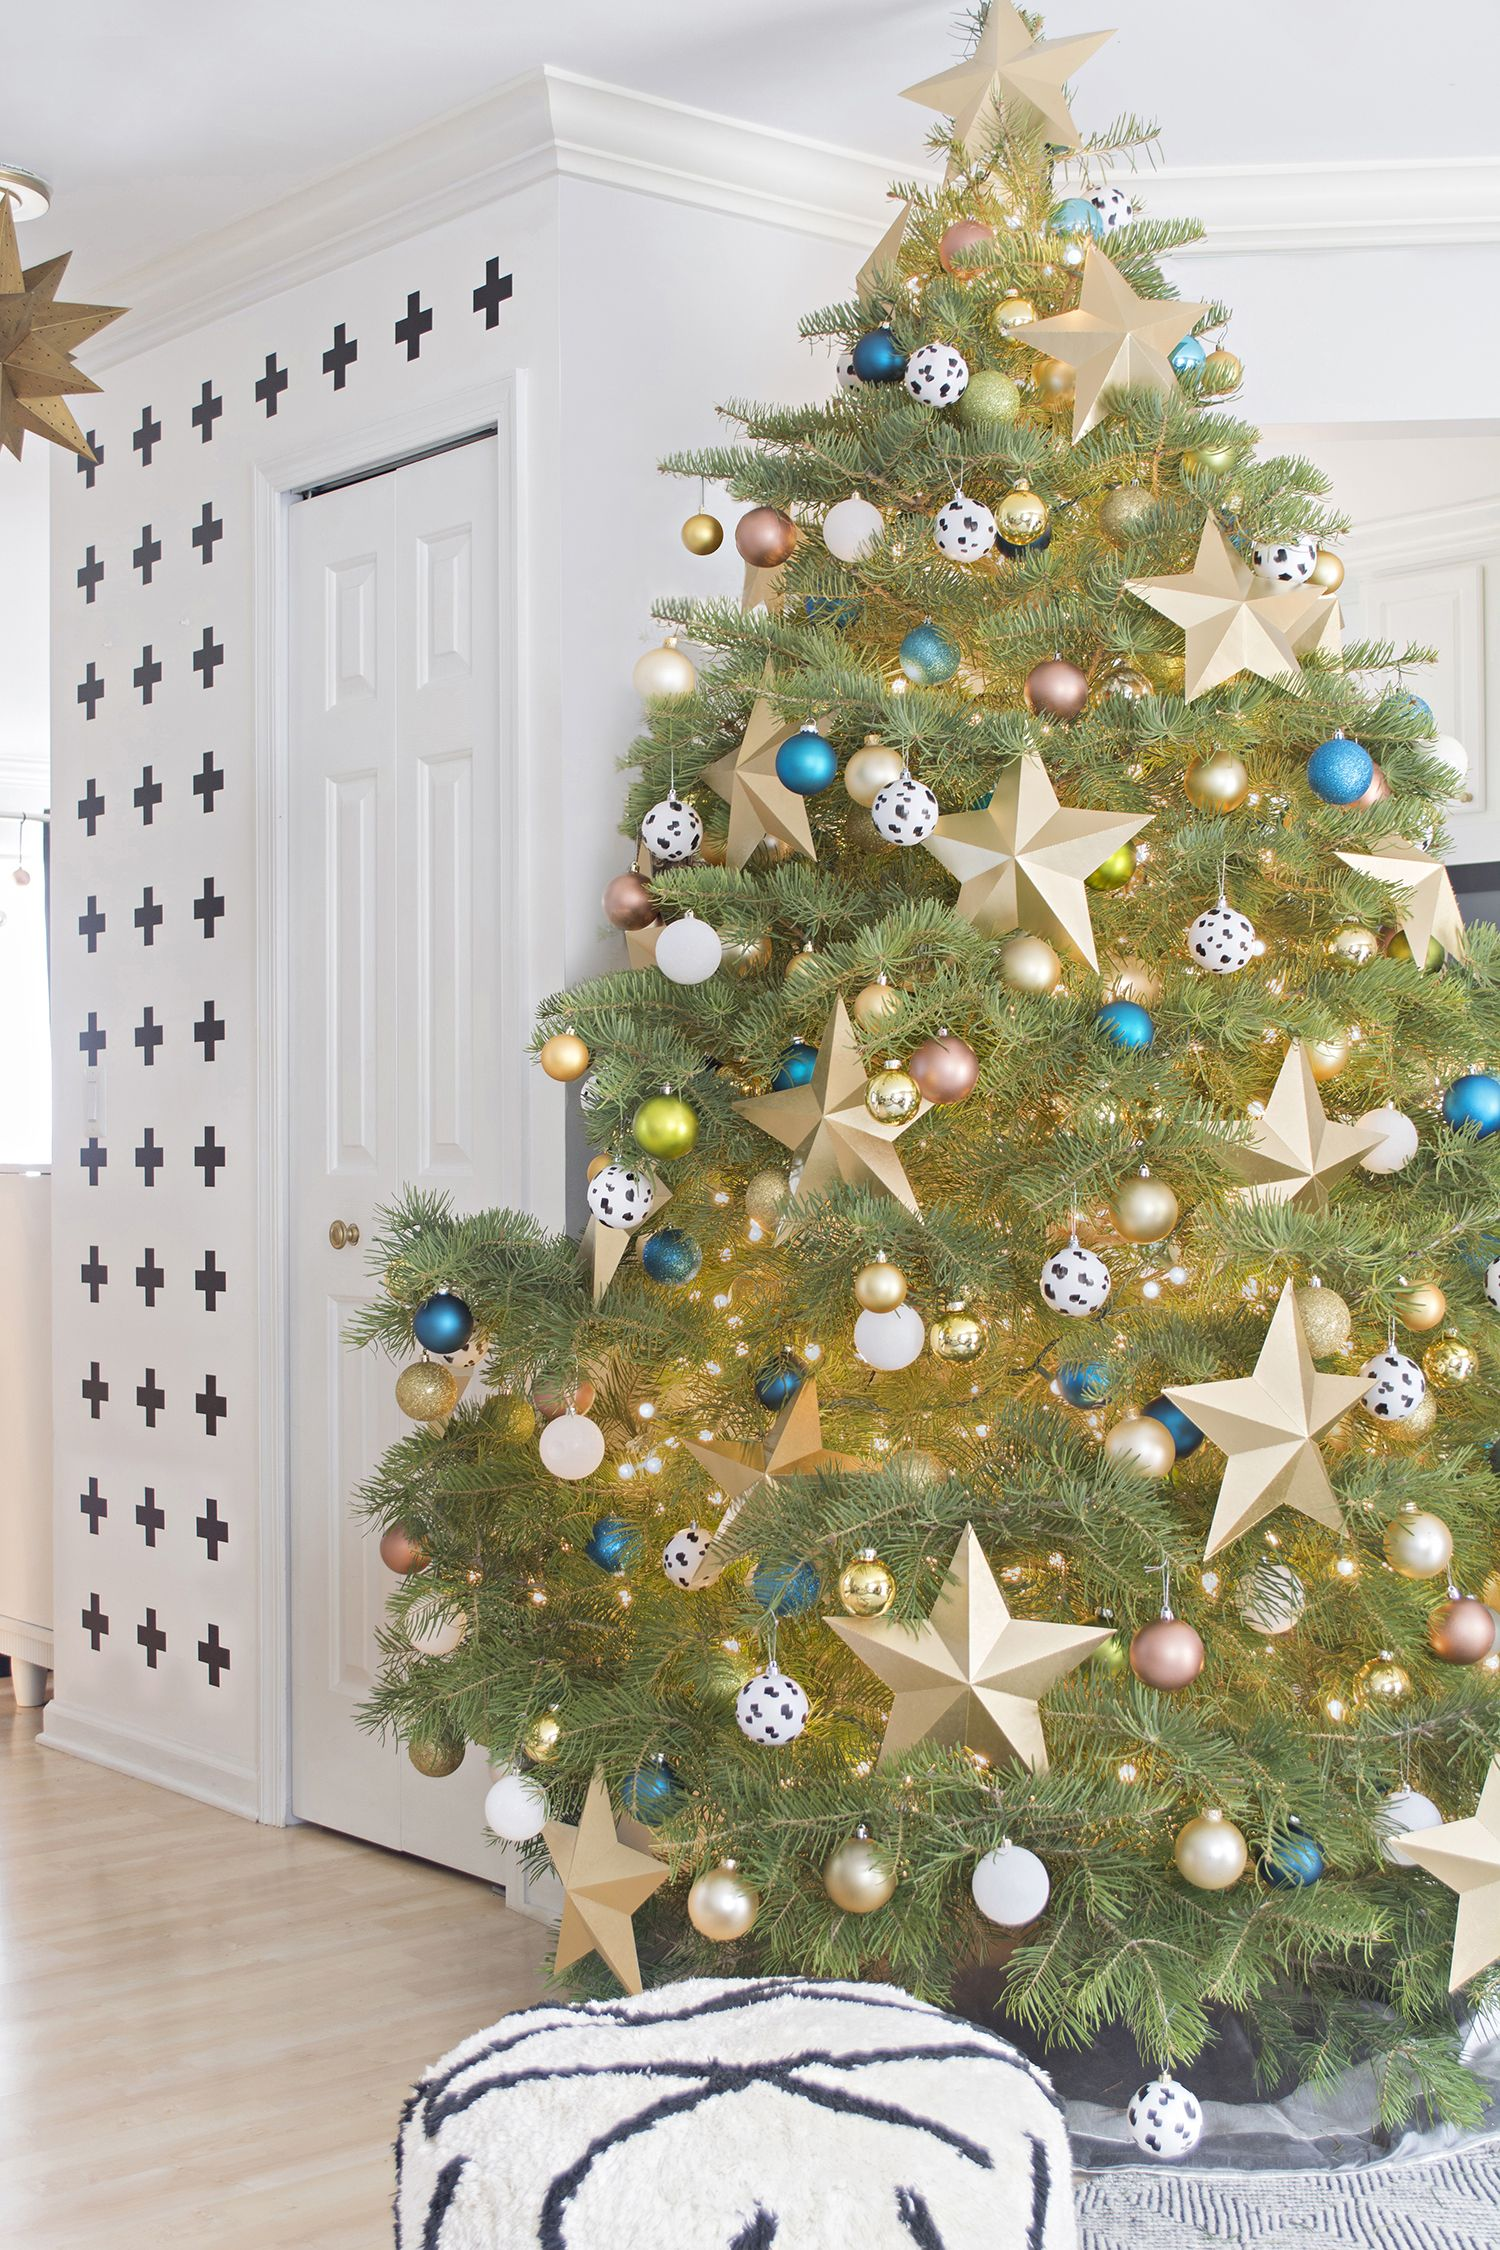 Christmas Trees Without Ornaments